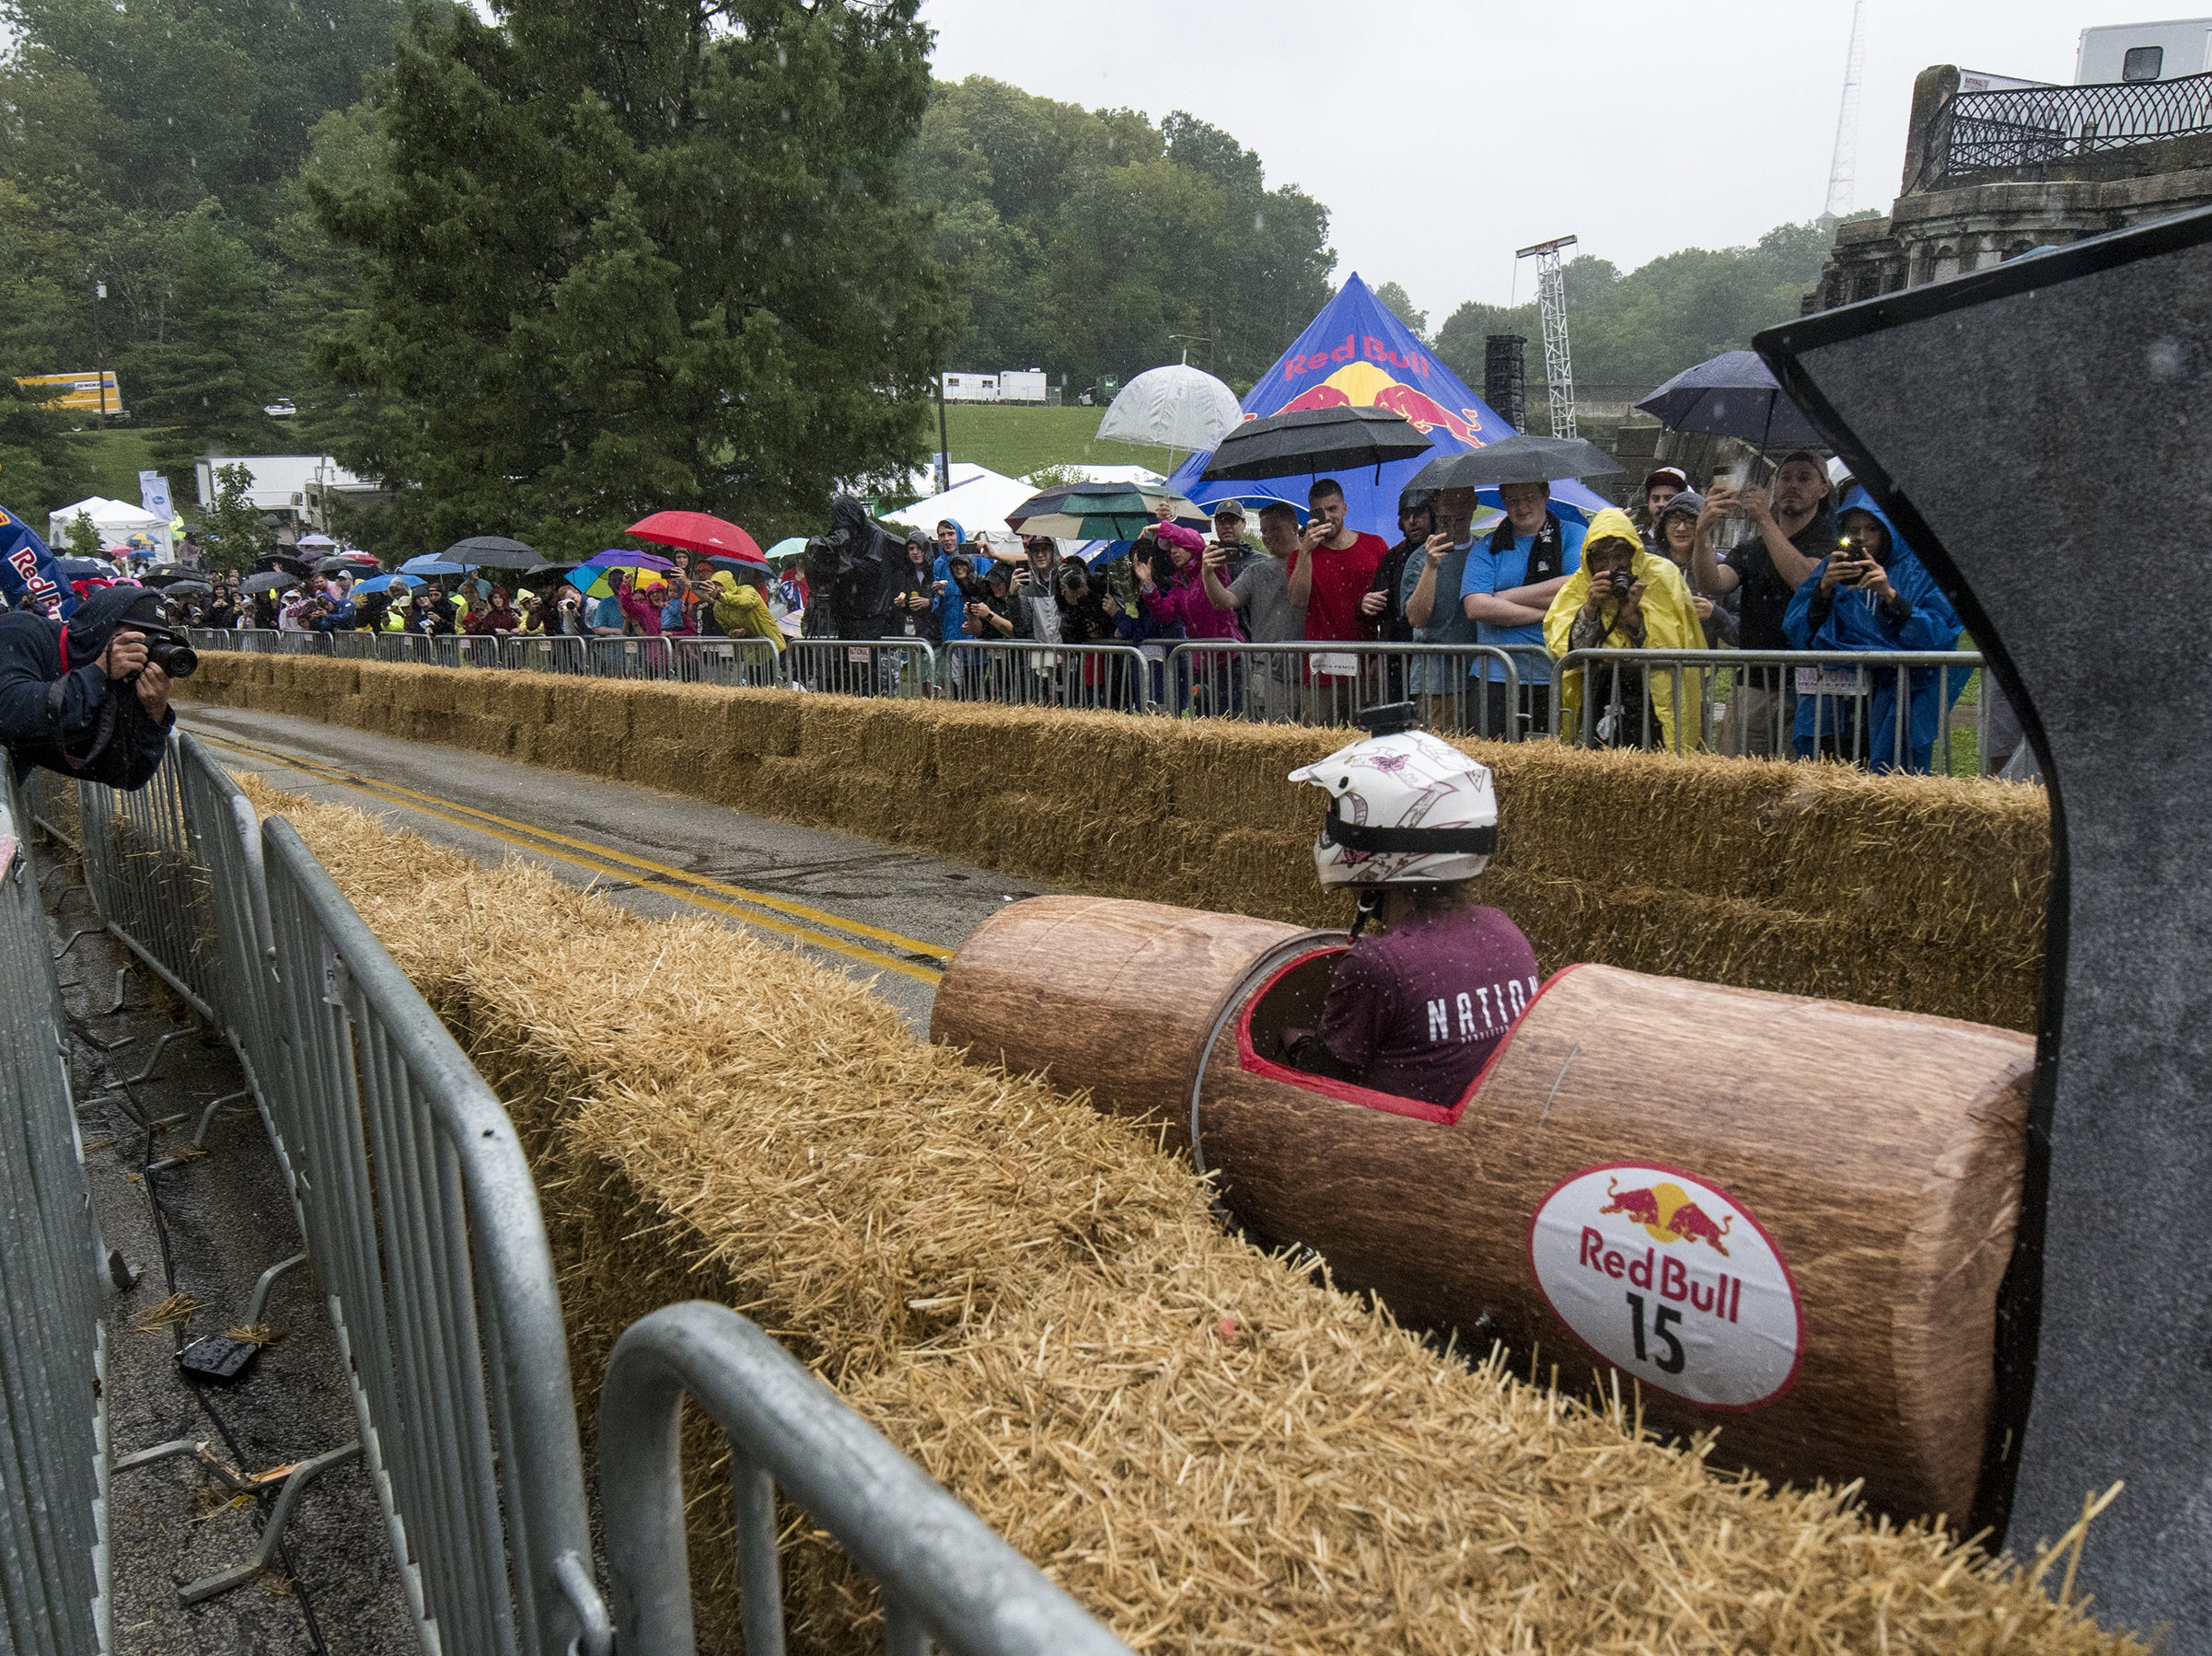 Carrie Nation's infamous hatchet, driven by a member of the team from Nation Kitchen and Bar, makes it way to the finish line of the Red Bull Soapbox Derby Saturday, September 8, 2018 in Cincinnati, Ohio.